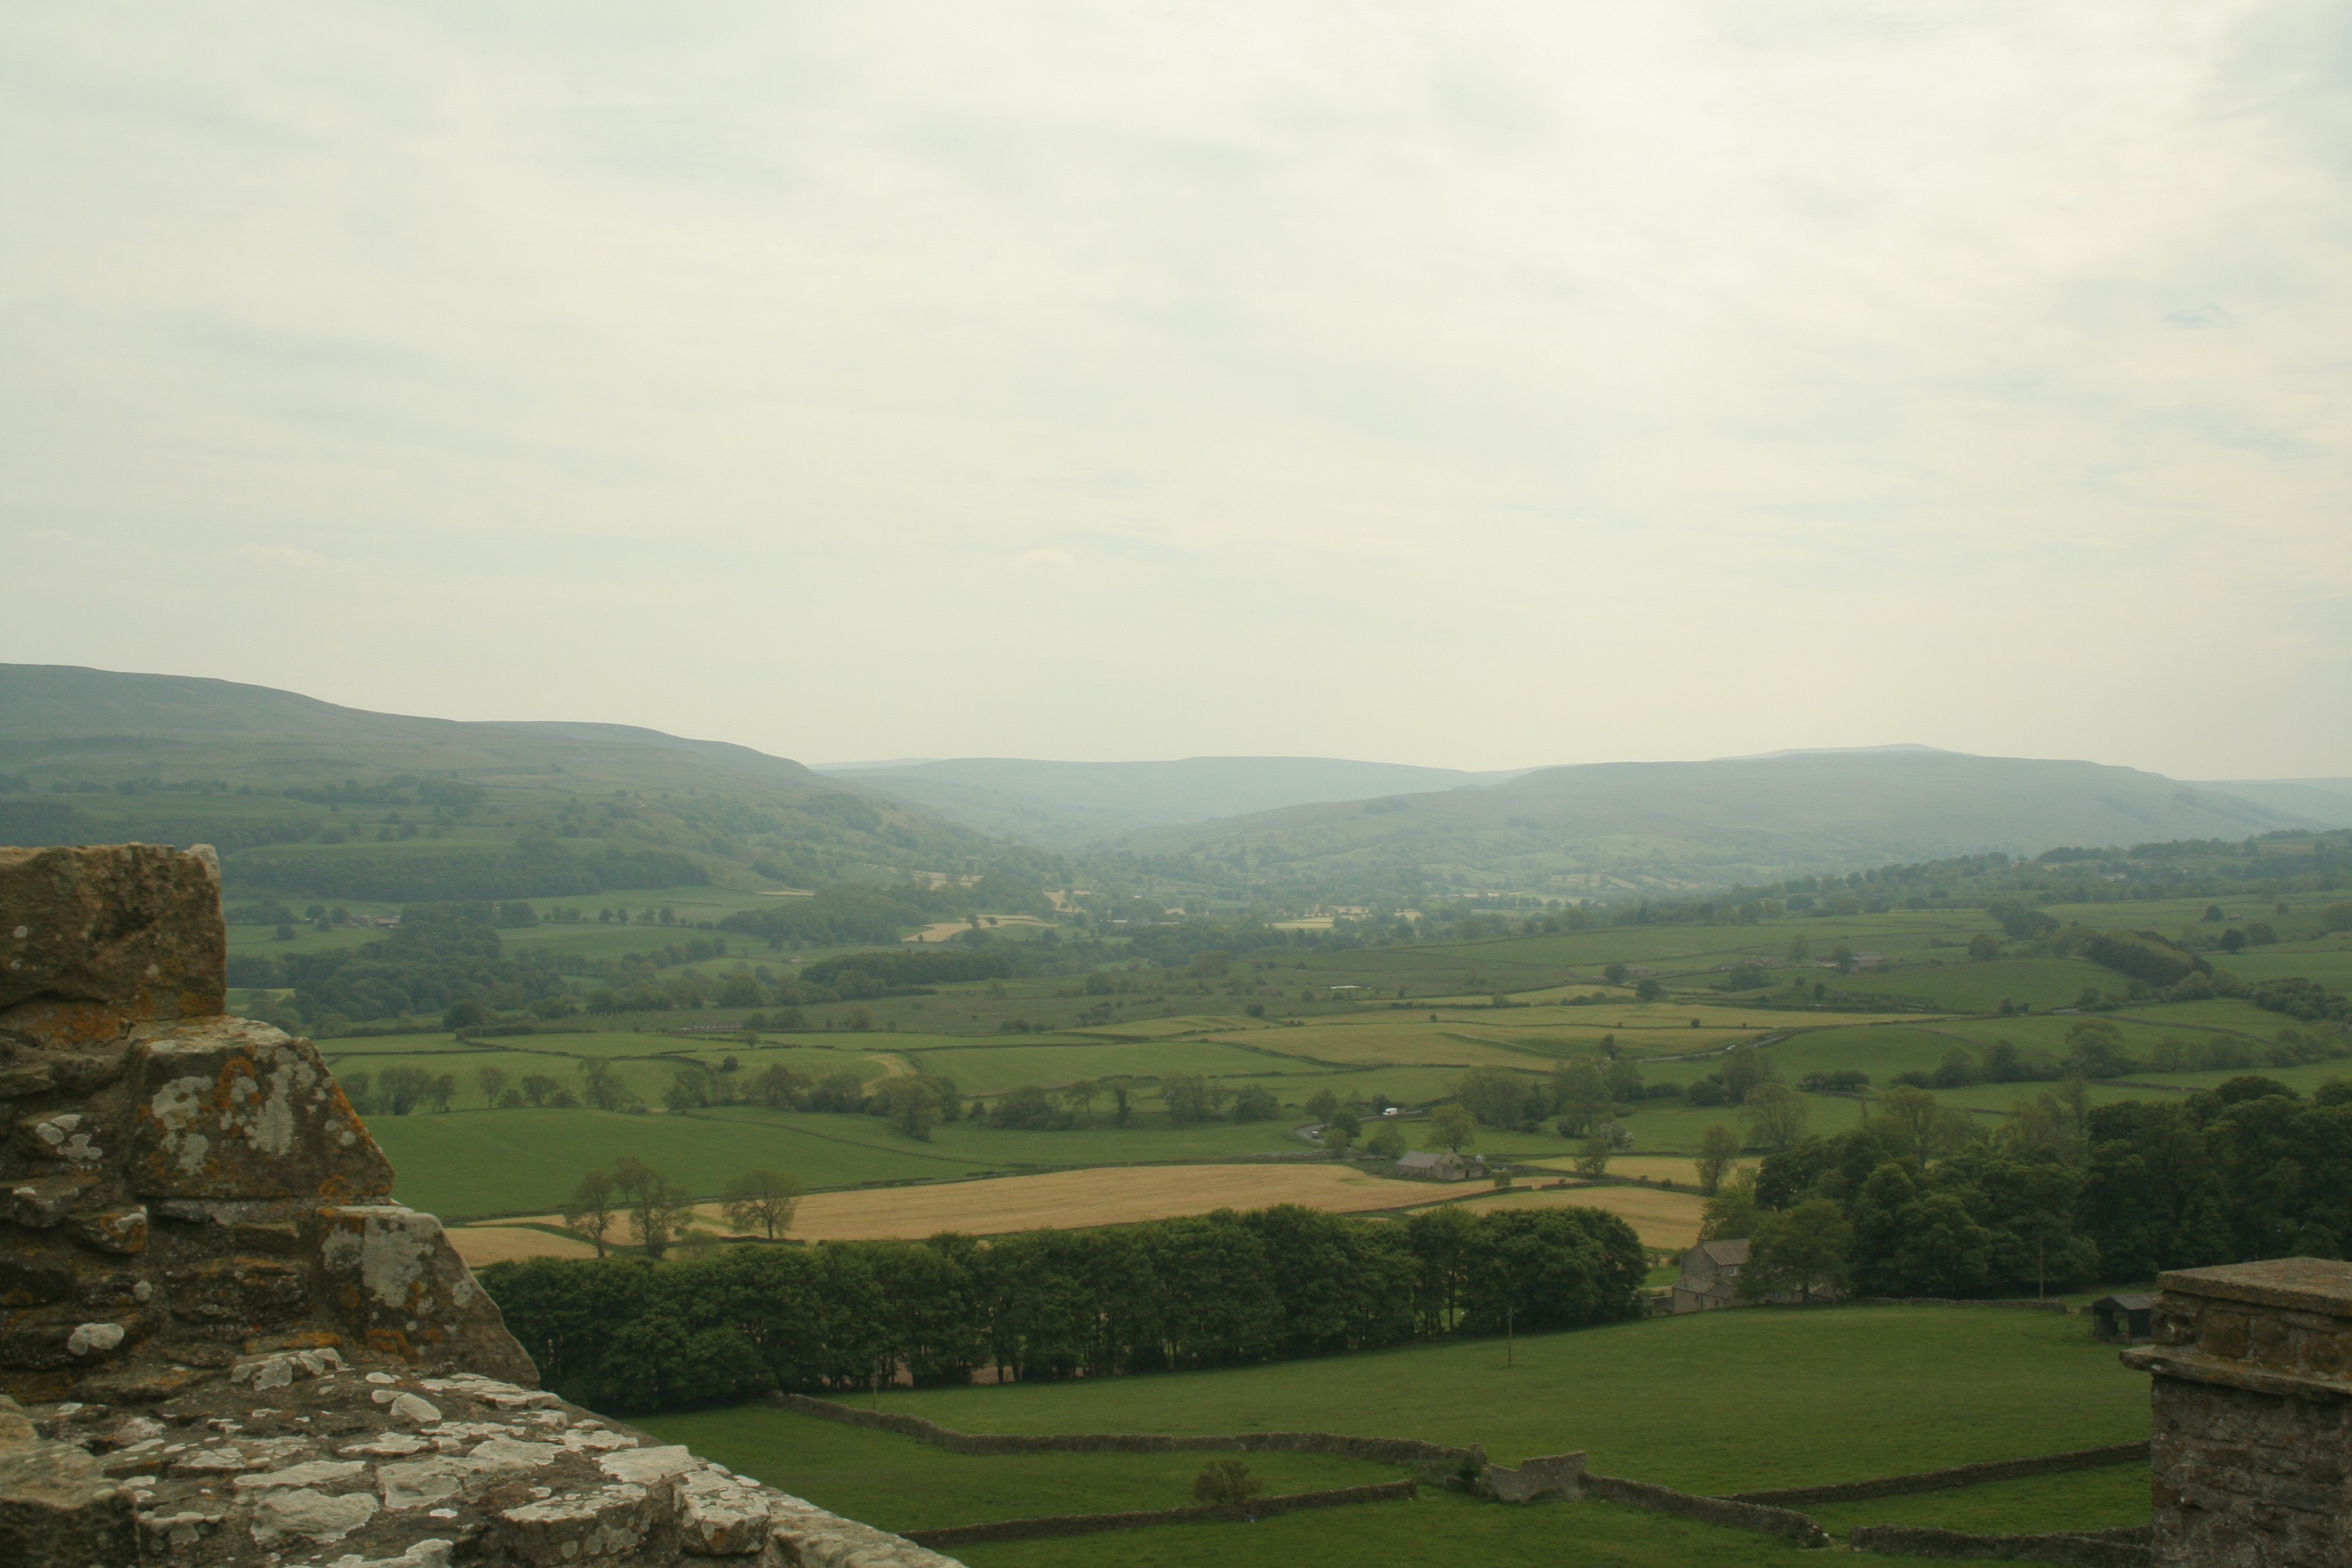 View-south-west-from-the-battlements-of-Bolton-Castle-across-Wensleydale-©-Tudor-Times-2015